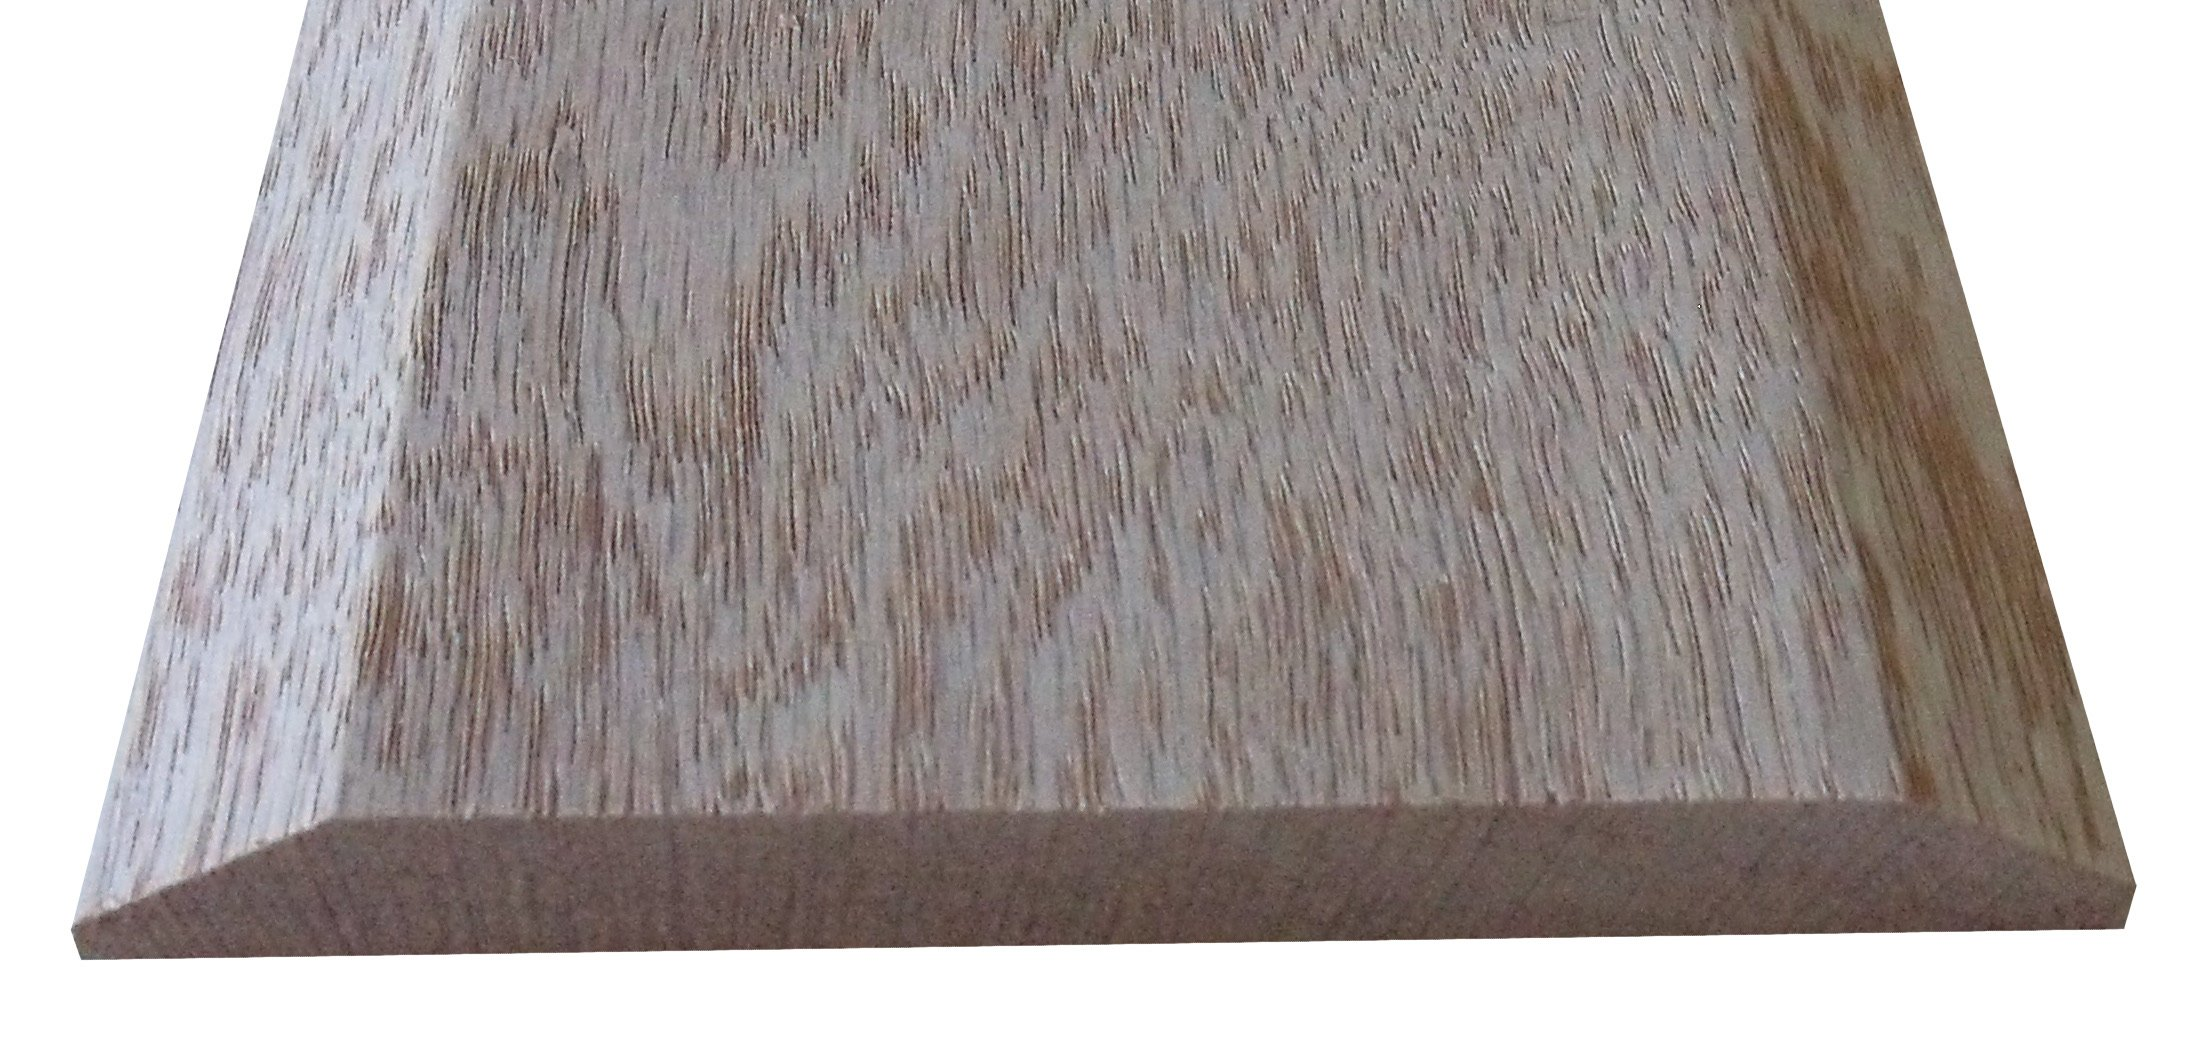 ADA 1/2 inch Solid Hardwood Interior Threshold in Red Oak (4 1/2 inches x 72 inches)